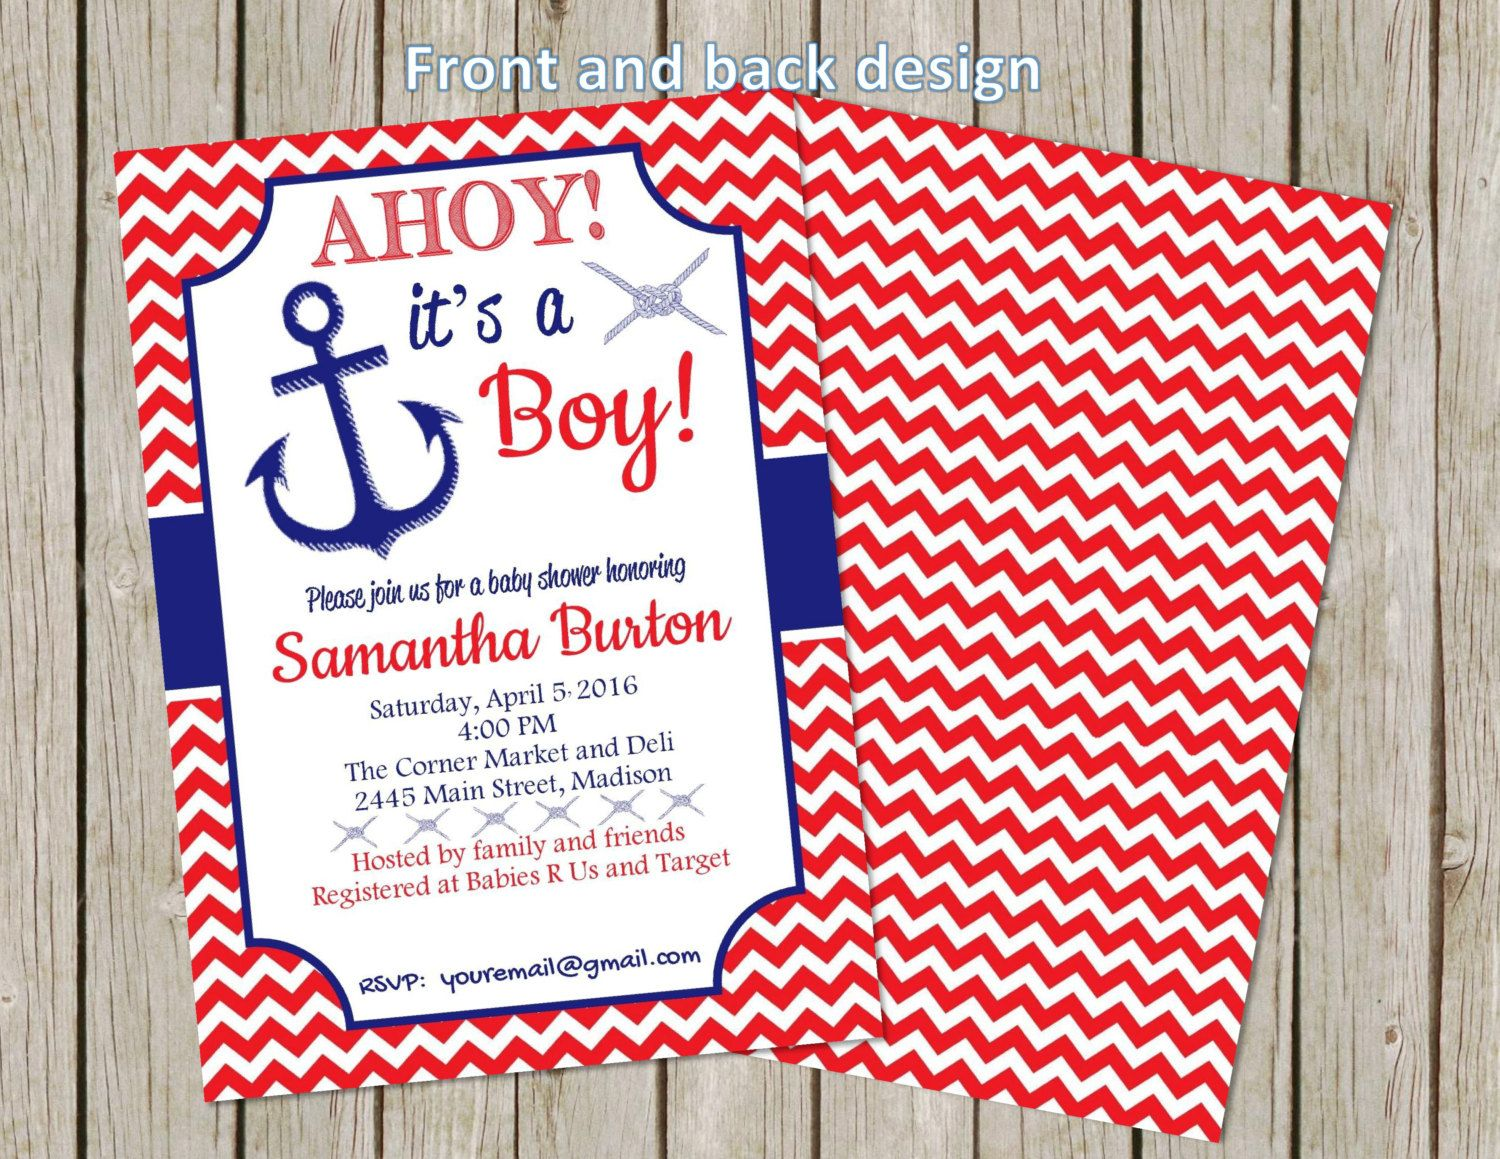 Ahoy It\'s A Boy!   Baby Shower Invitation   Red   White   Blue ...